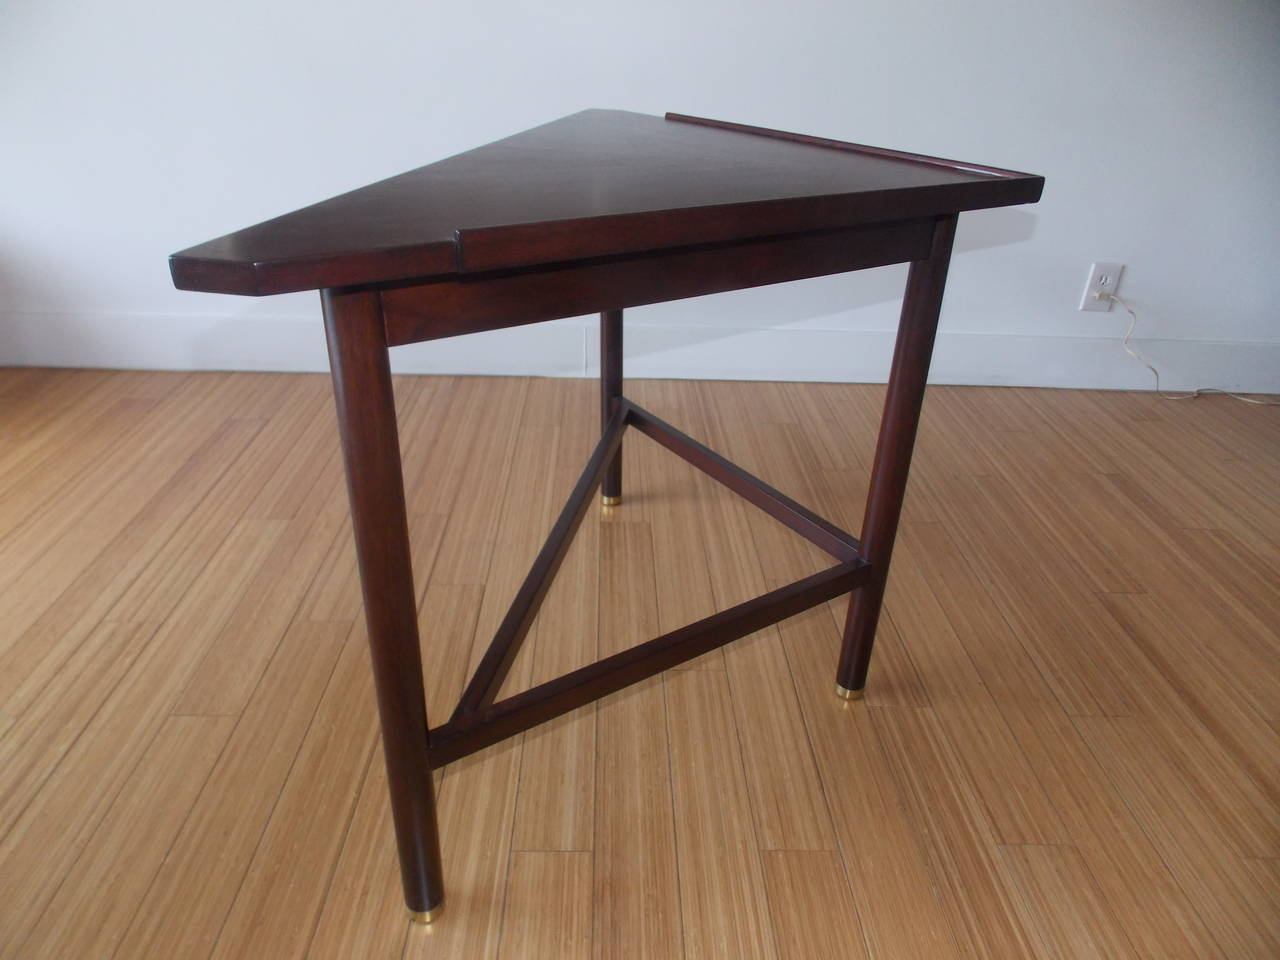 edward wormley dunbar triangle console table at 1stdibs. Black Bedroom Furniture Sets. Home Design Ideas